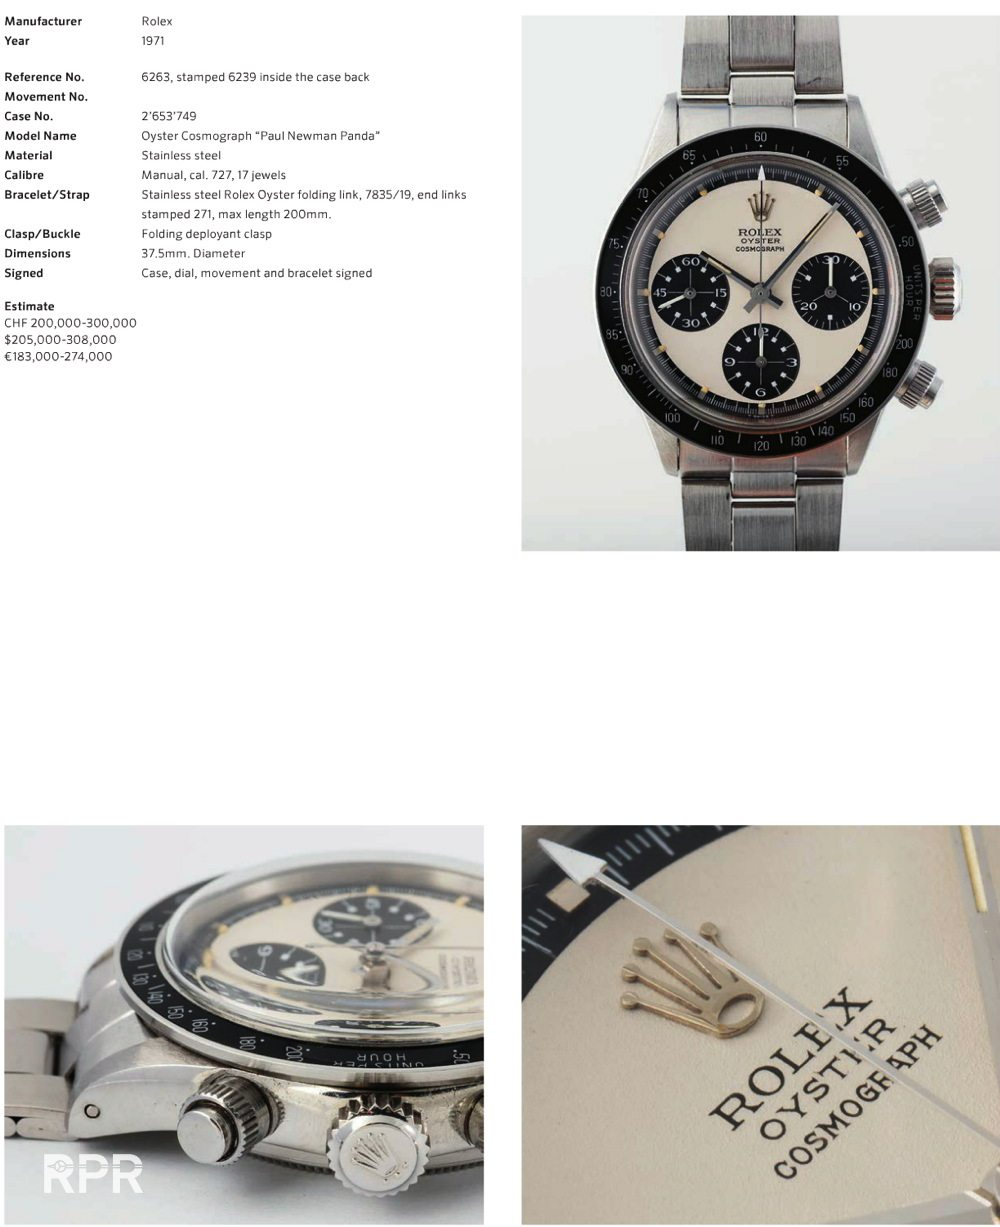 RPR_Rolex_geneva_auction_2015_4